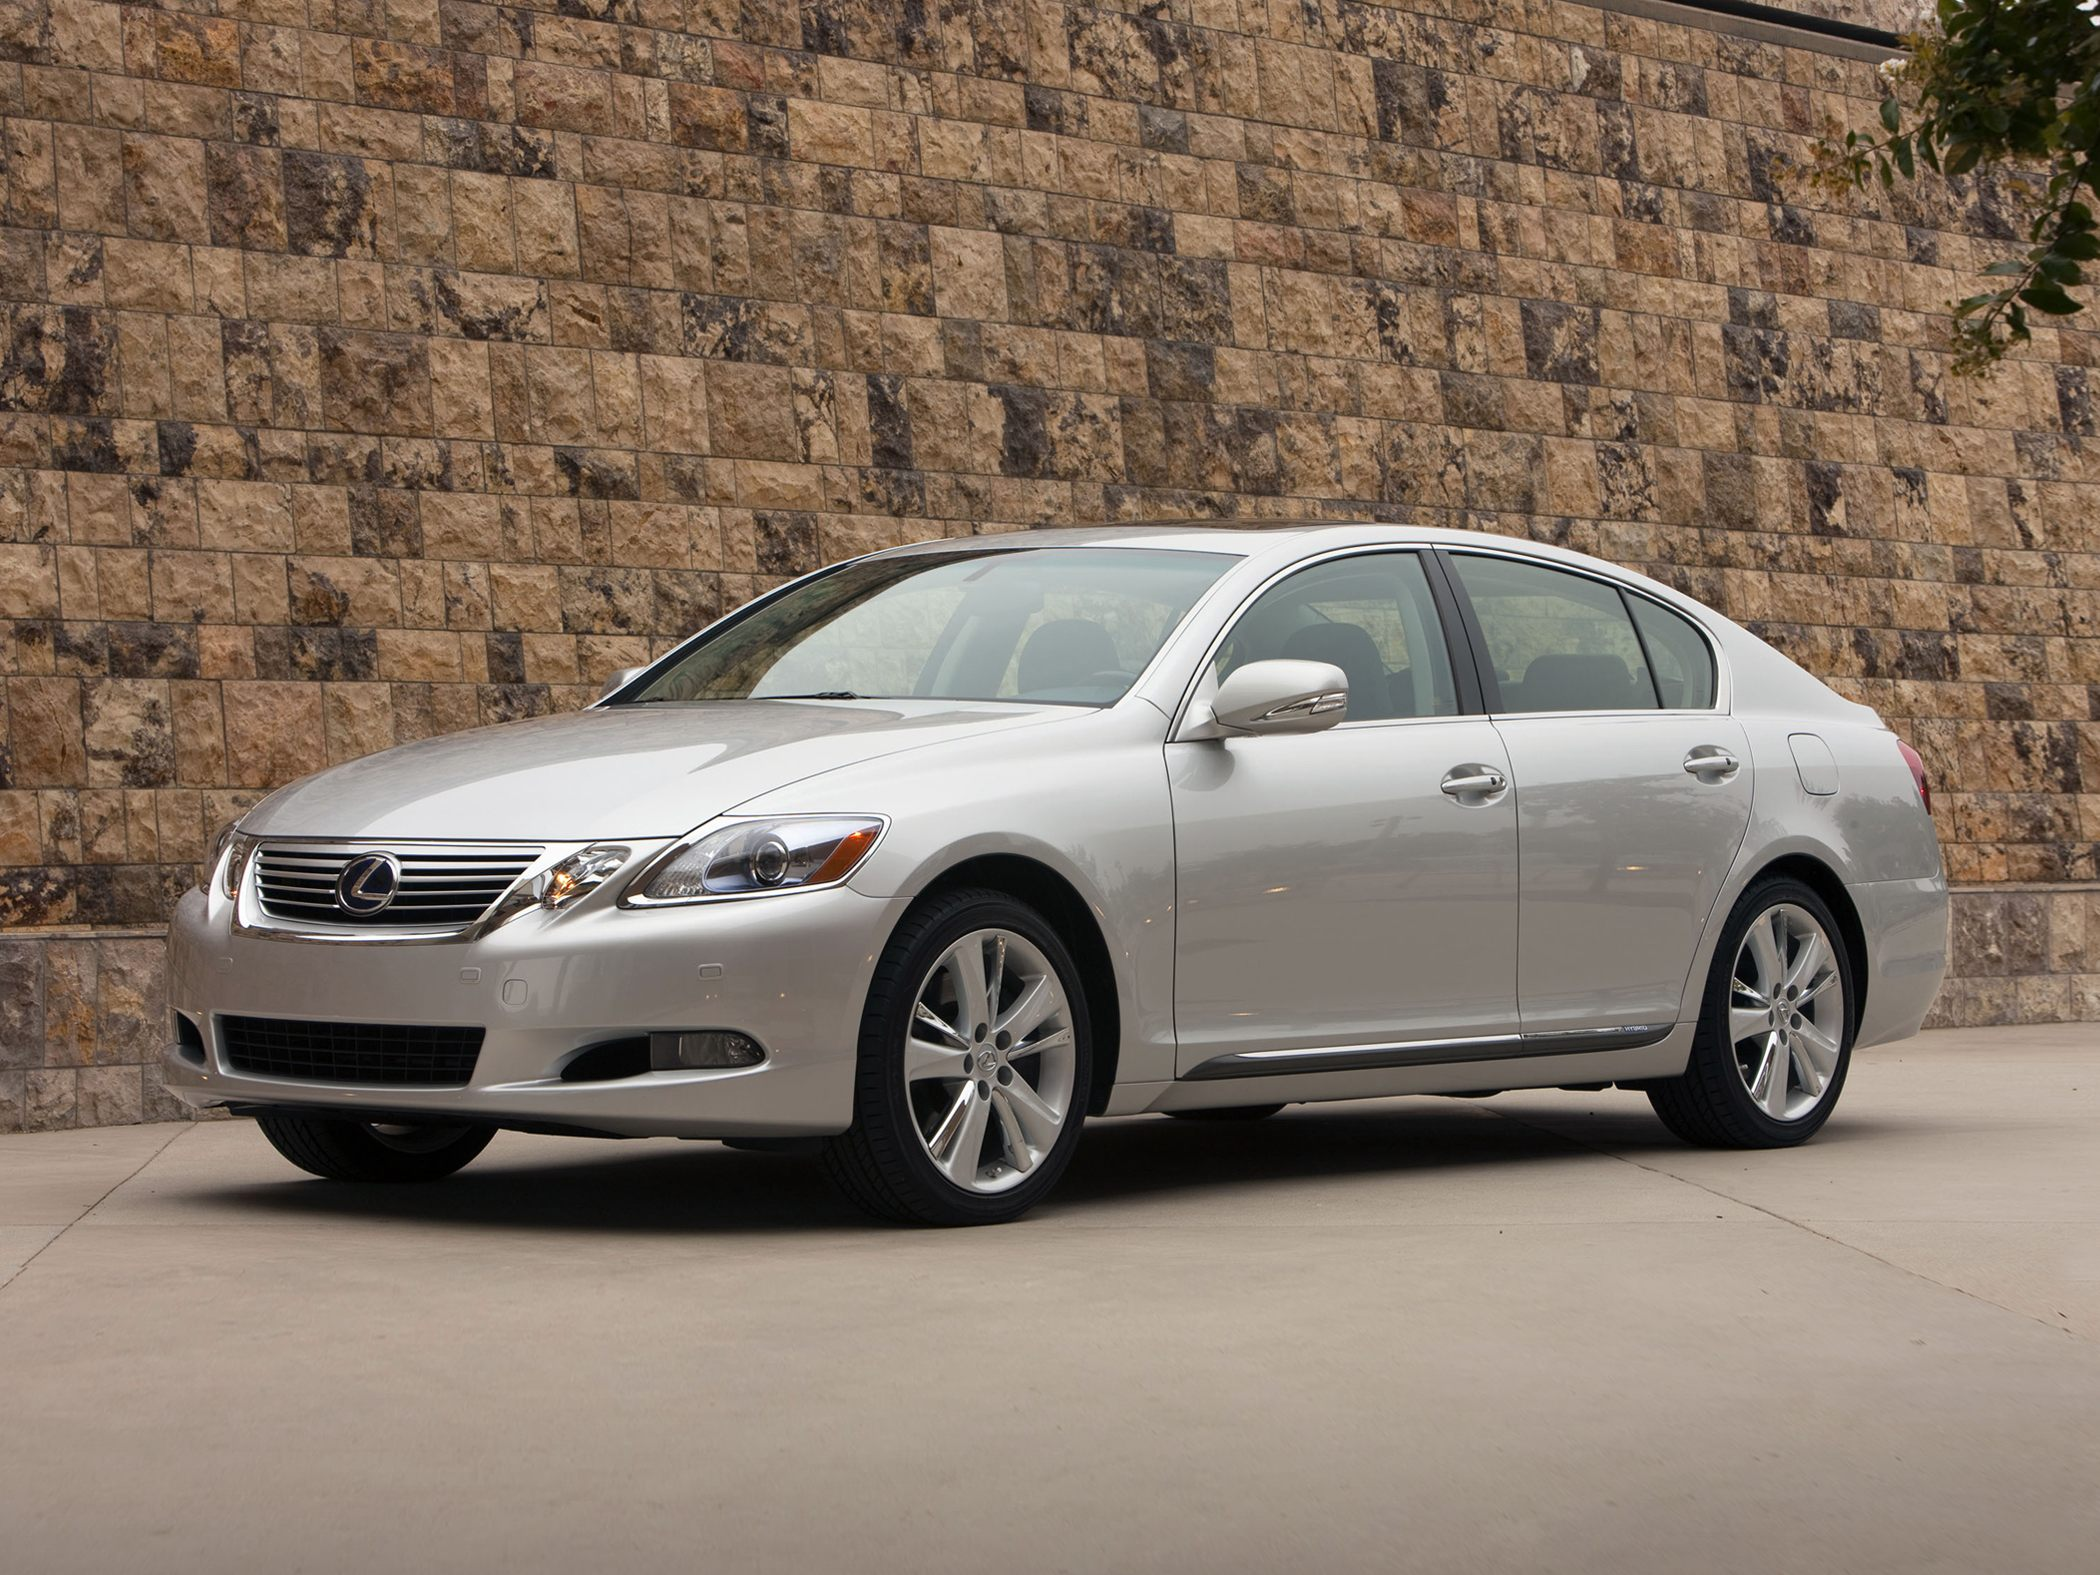 Lexus GS 450h 2011 photo - 6